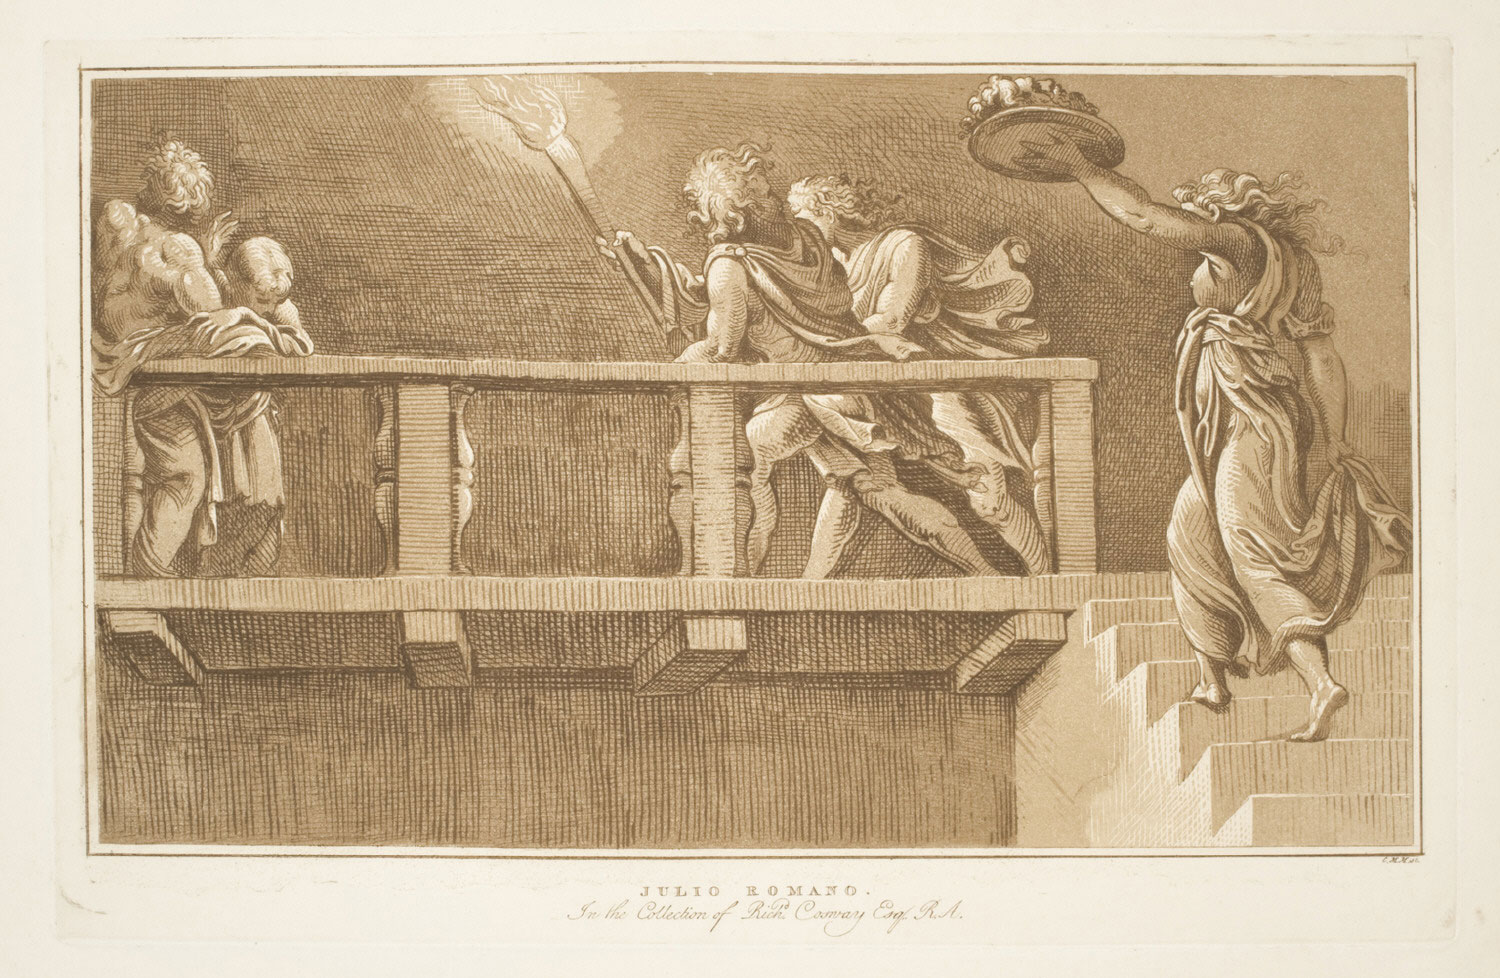 Figures on a Balustrade--Salome with the Head of John the Baptist